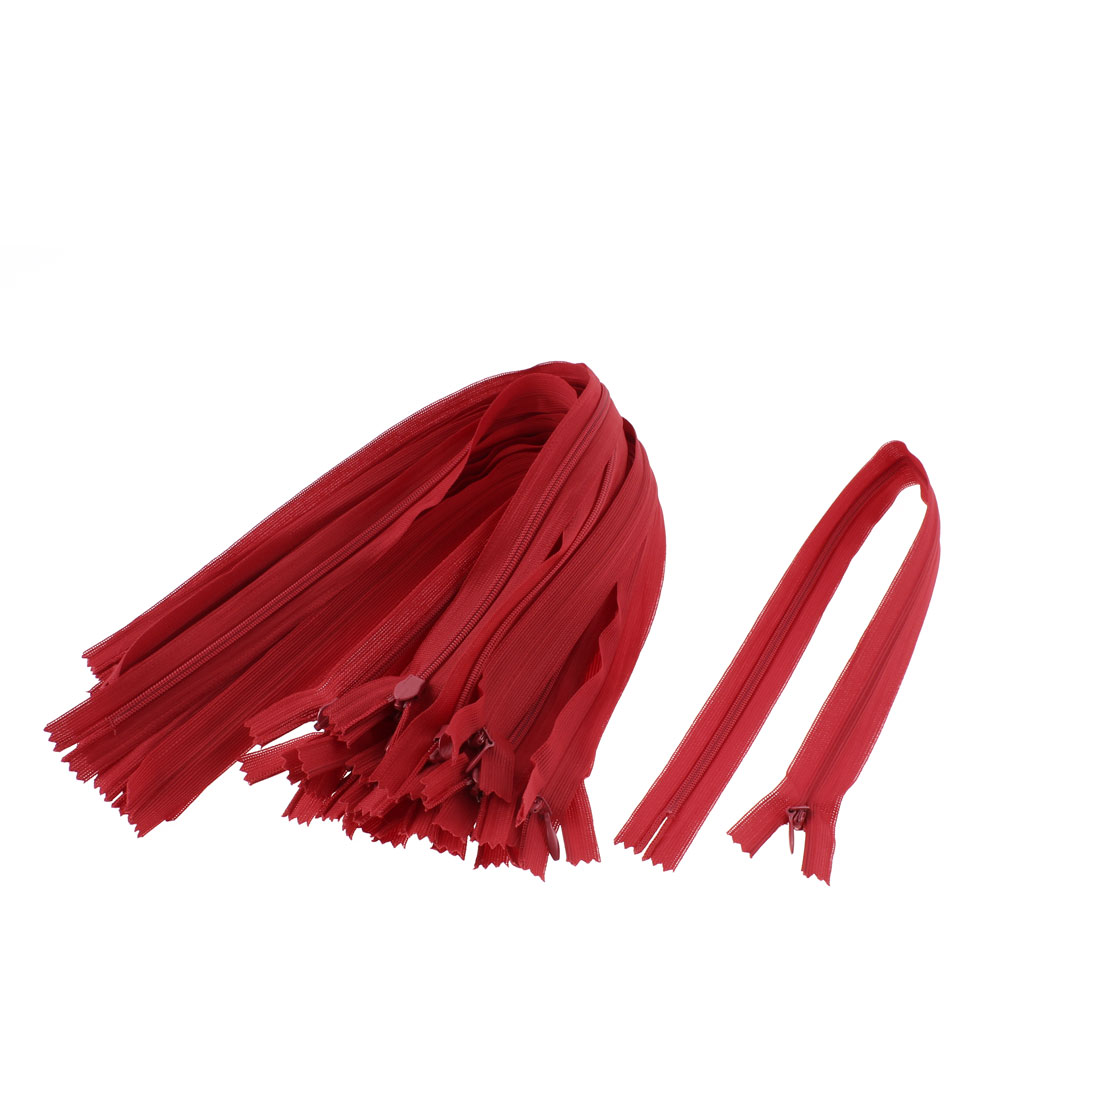 Dress Pants Closed End Nylon Zippers Tailor Sewing Craft Tool Red 40cm 20 Pcs